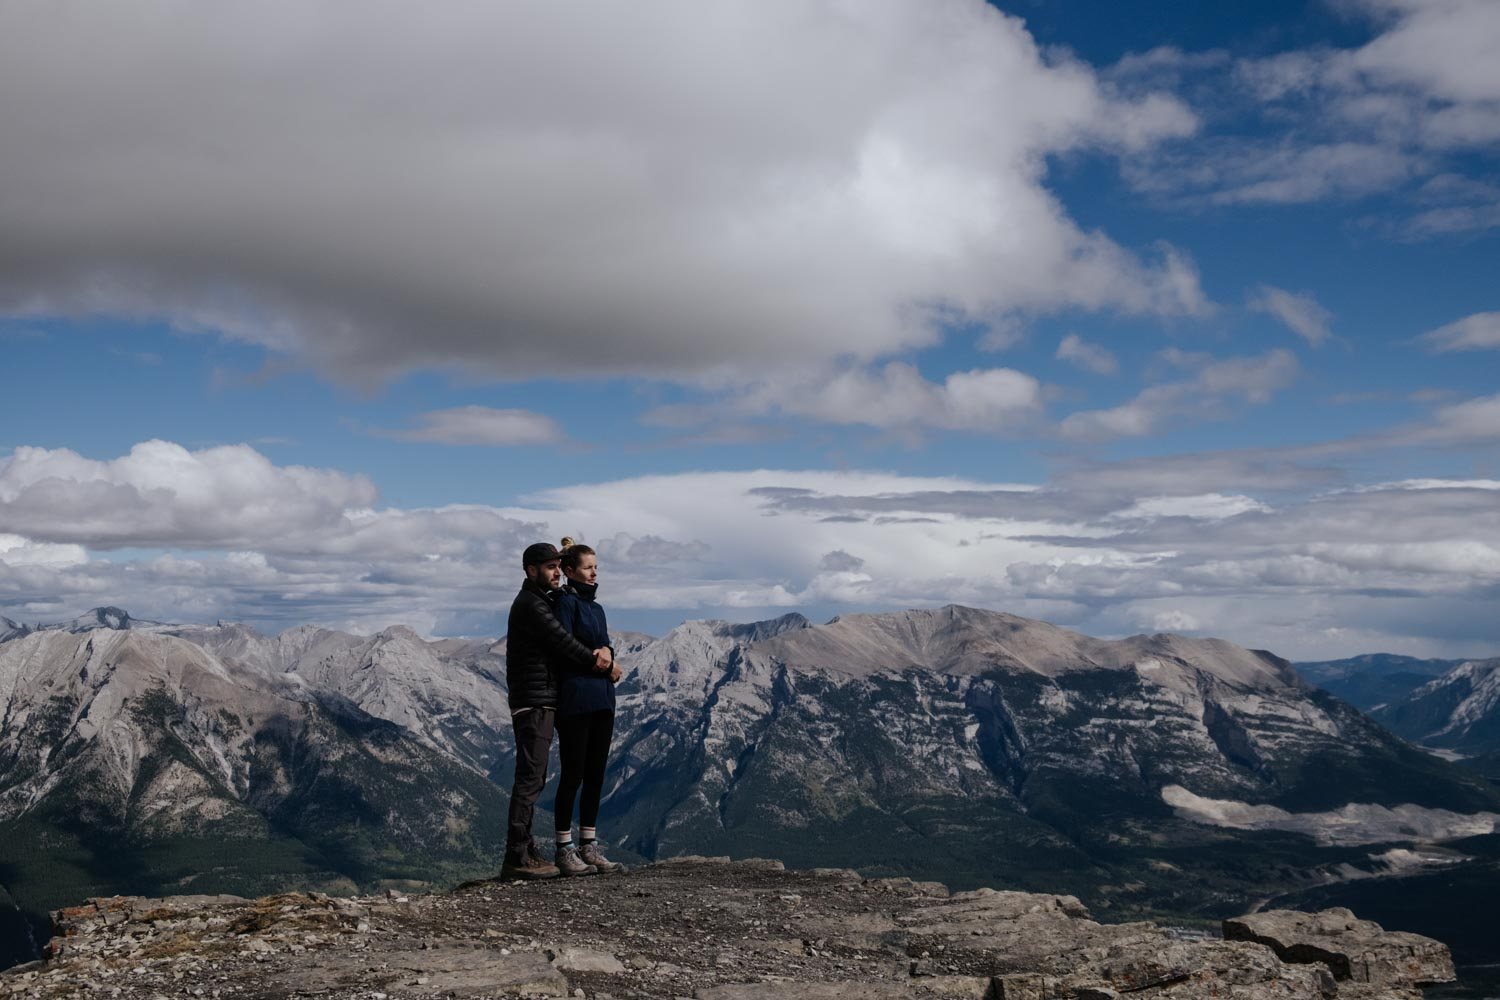 East End of Rundle is a hike close to Canmore with a pretty gnarly uphill grind and some really hairy sections. Of course the view from the top was 100% worth it – we were completely surrounded by epic mountains. Probably one of the top 5 views we have ever seen!